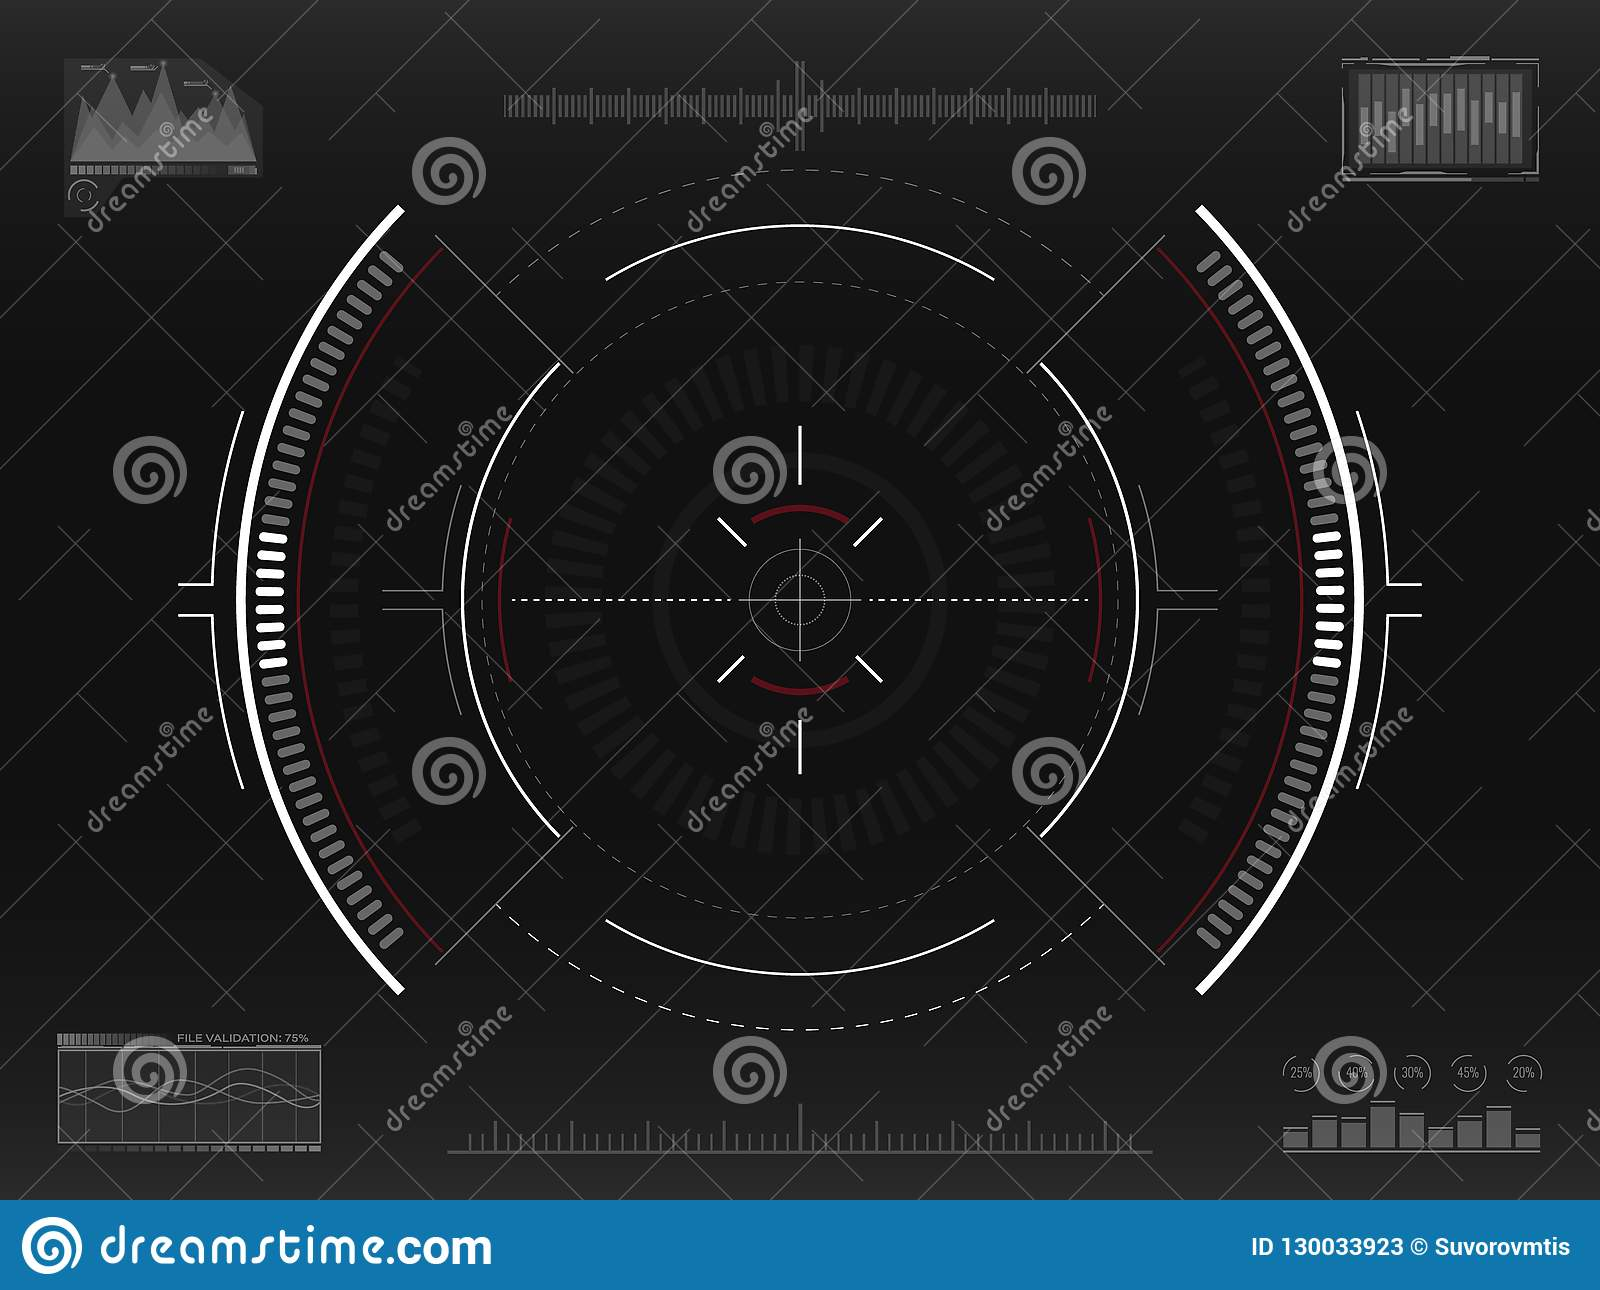 Aim system. Futuristic aiming concept. Modern crosshair. Sci-fi HUD interface. UI with infographic elements. Spaceship